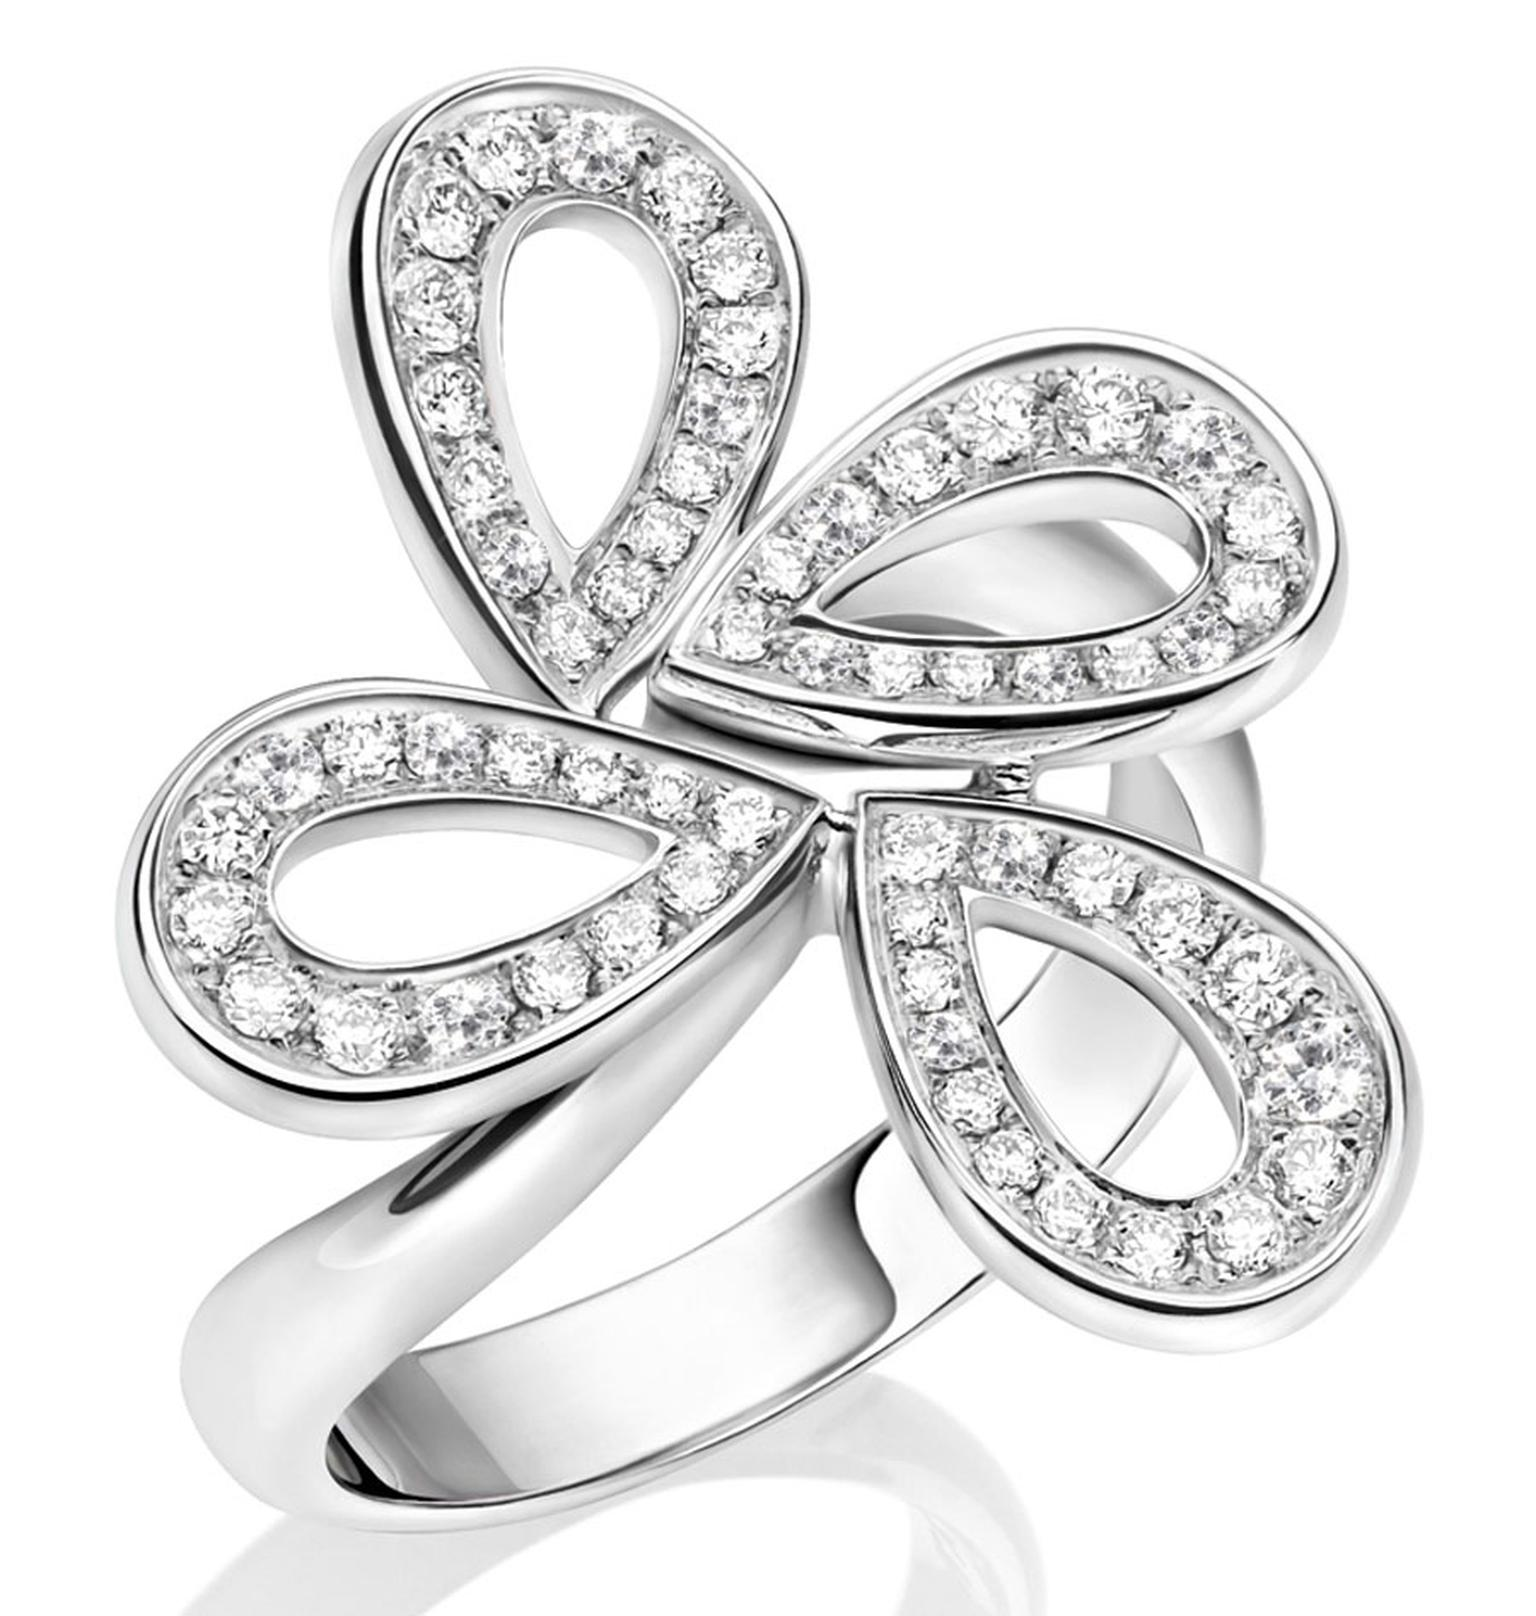 Montblanc_Collection_Princesse_Grace_de_Monaco_Petales_de_Rose_motif_ring_107963